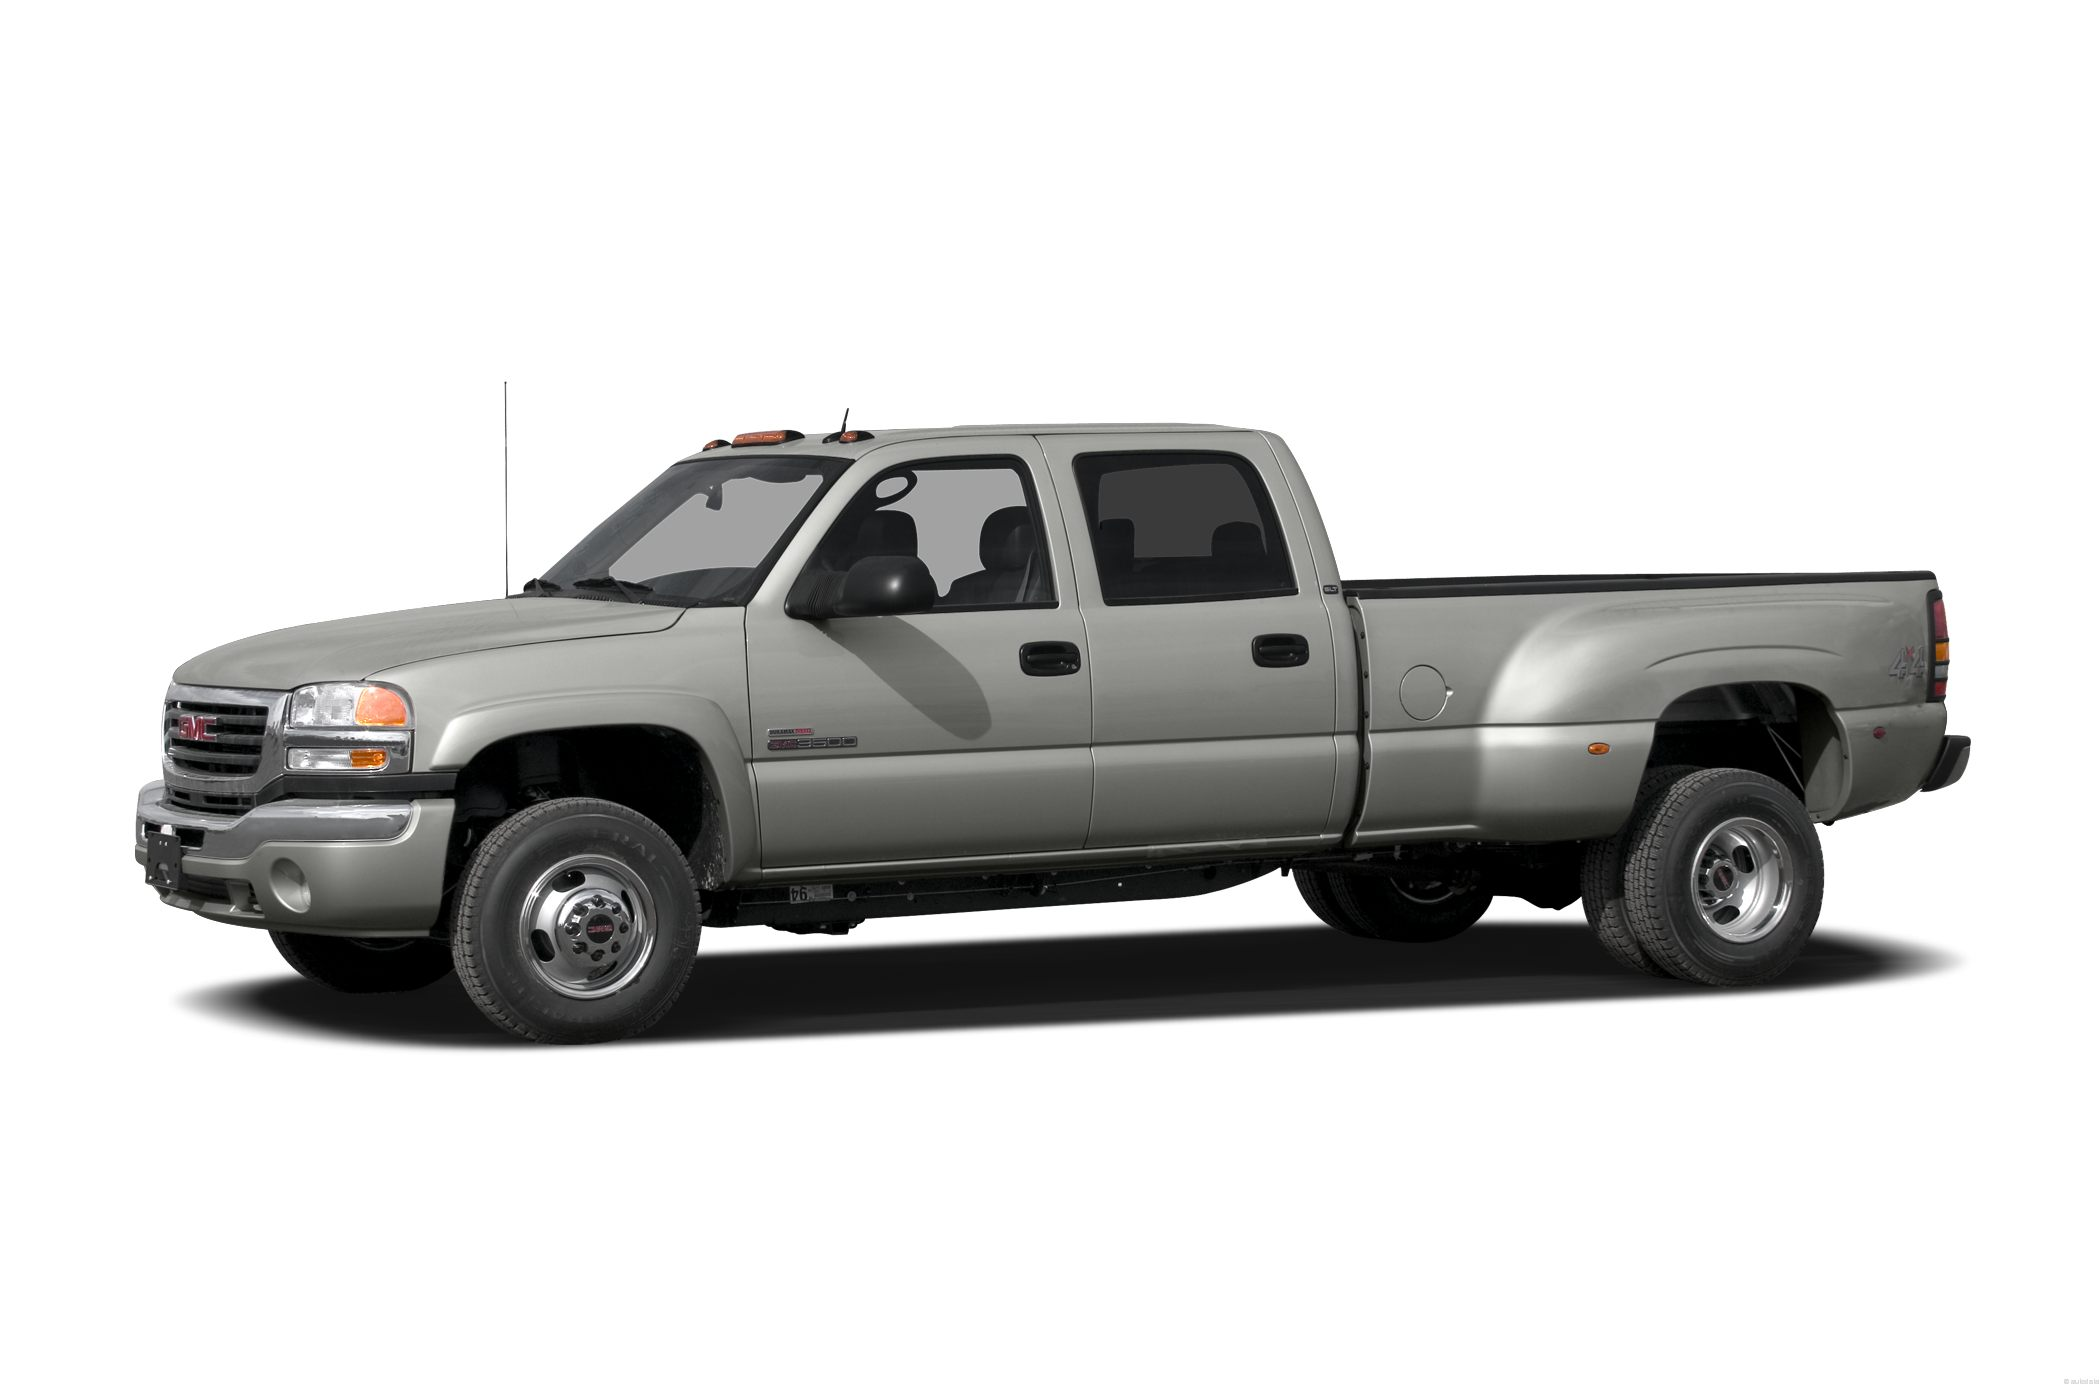 Gmc Sierra Classic 3500 Specs Photos Videos And More